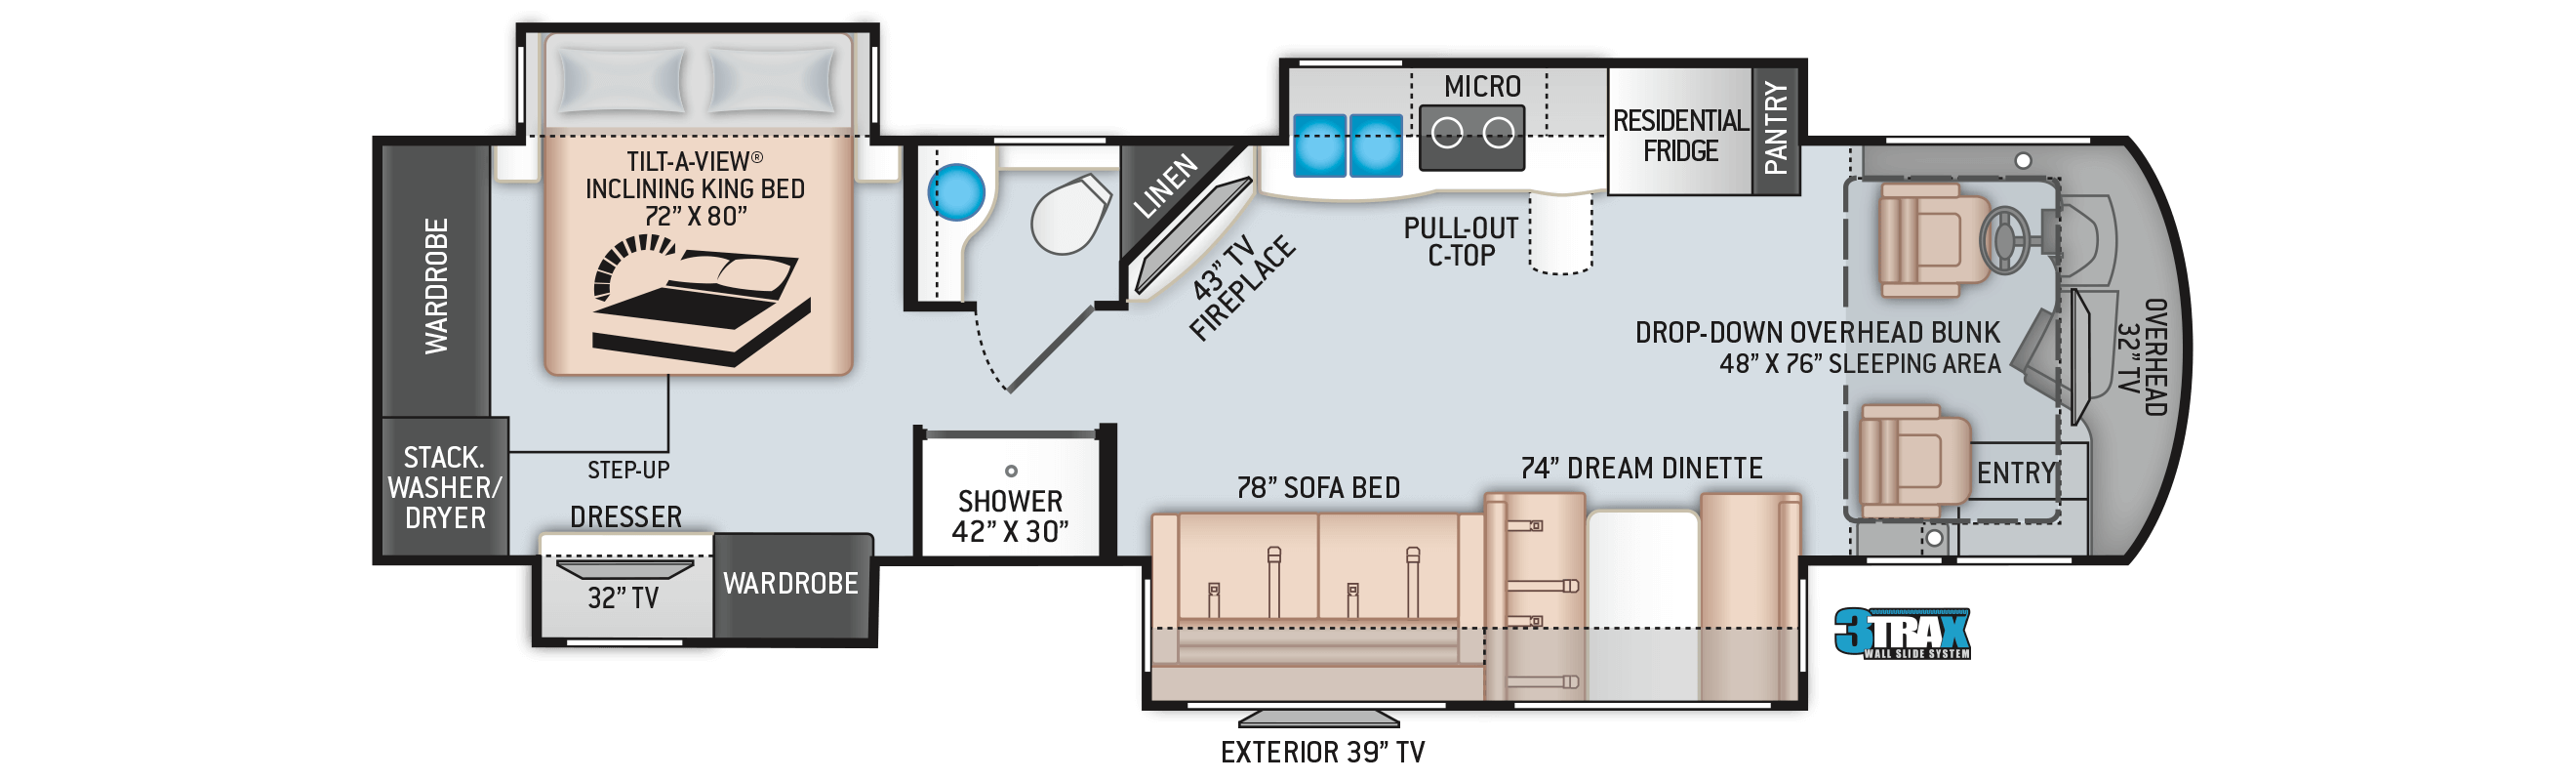 2020 Aria 3601 Floor Plan